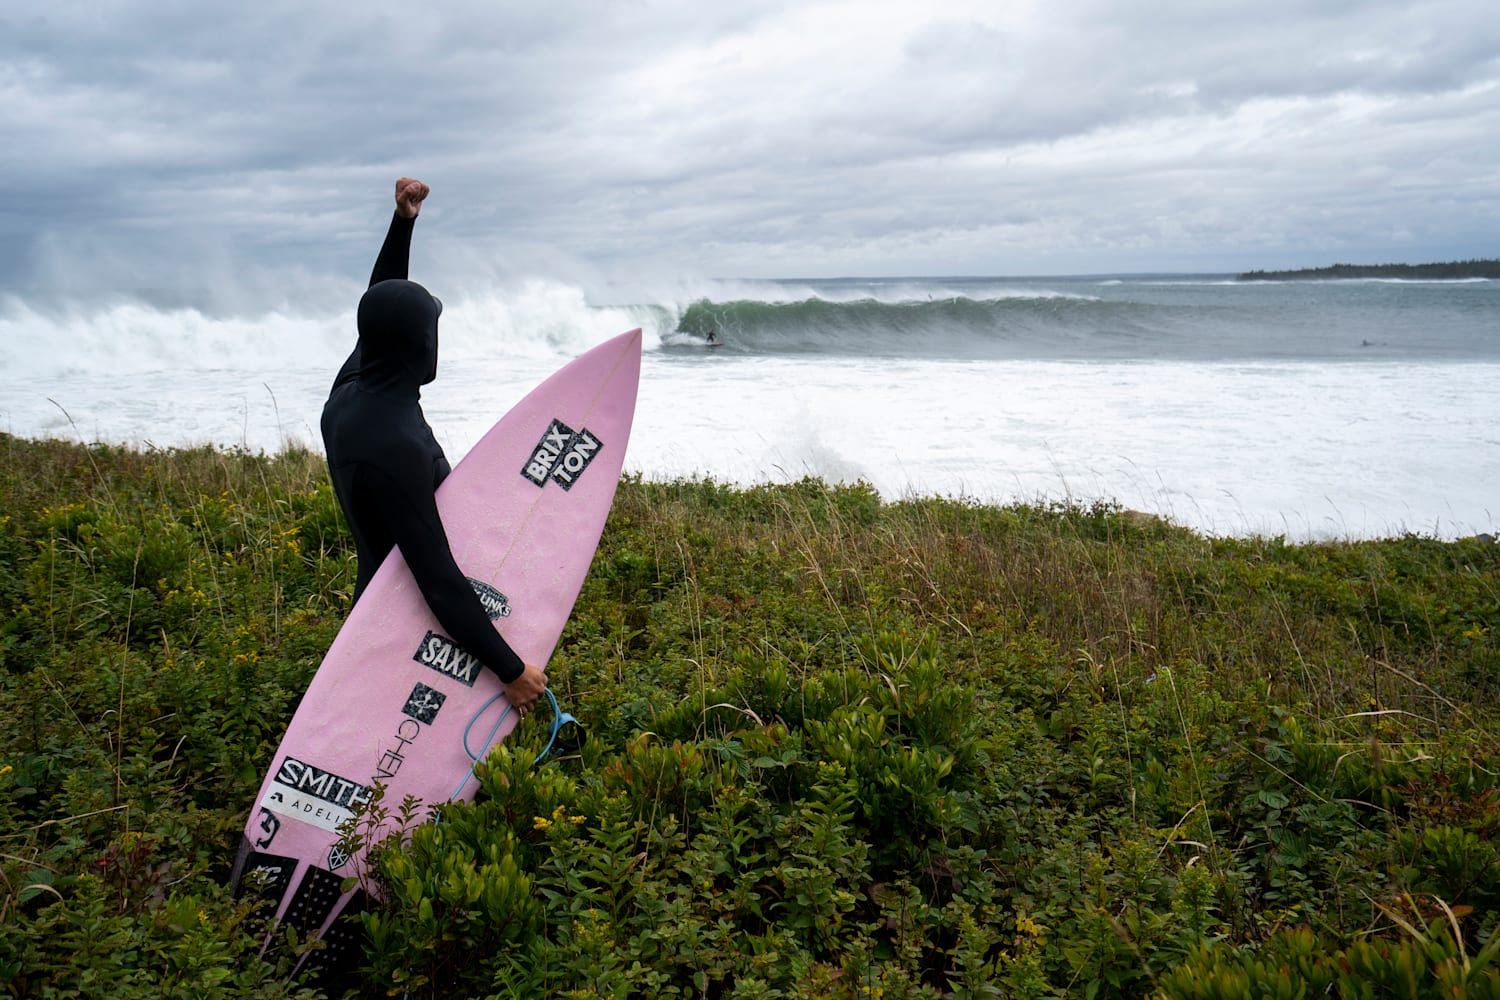 The story of an east coast storm chasing surfer